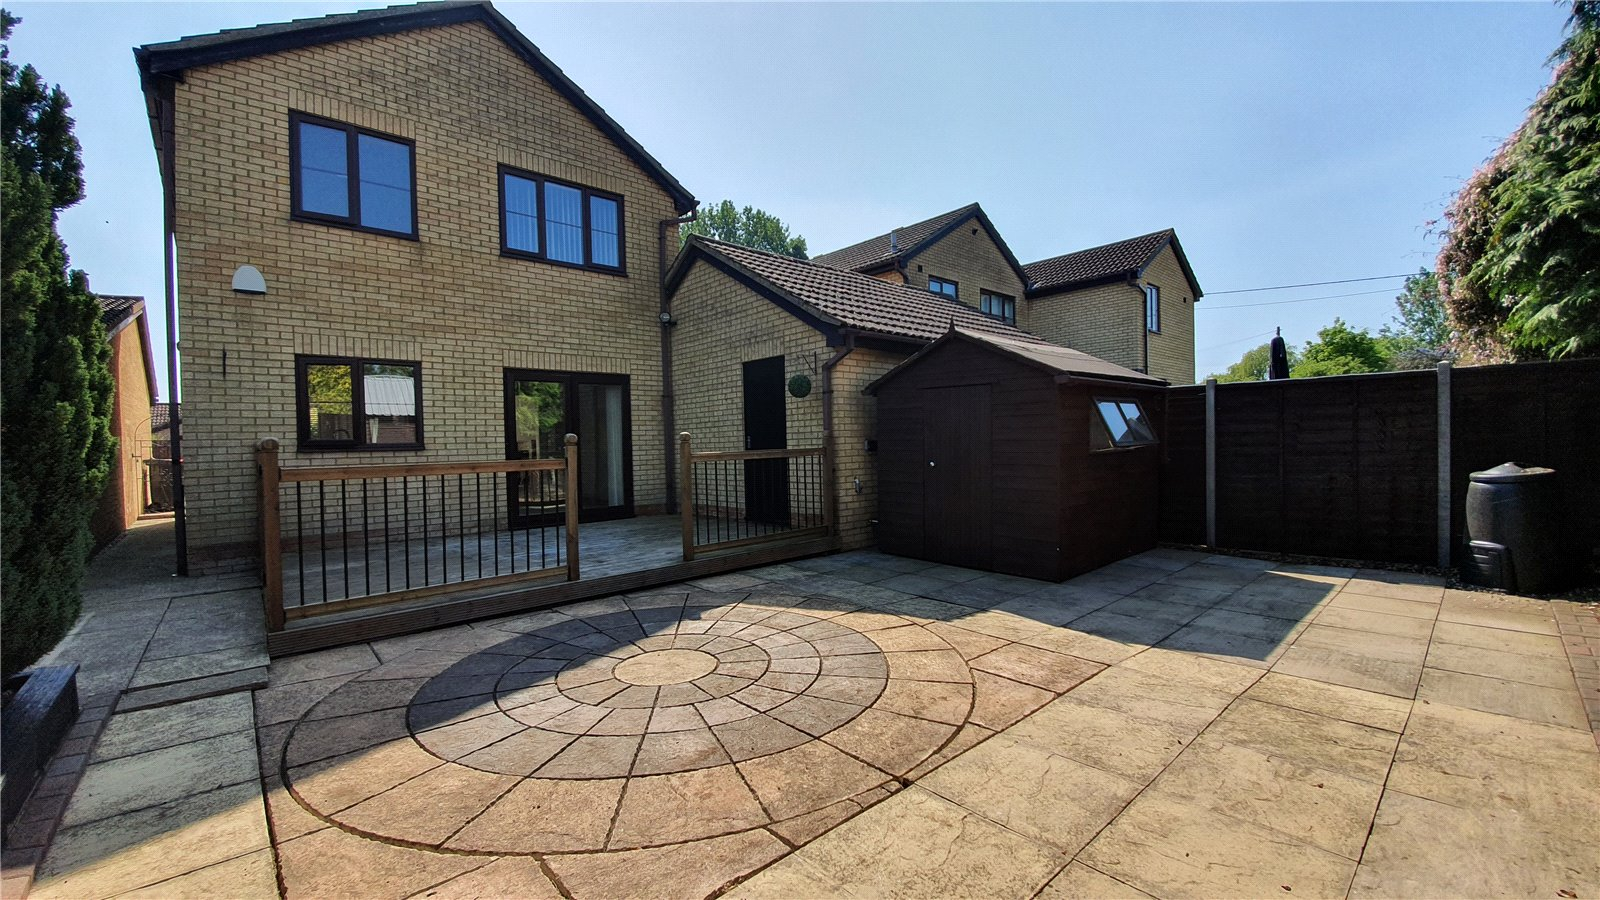 3 bed house for sale in Farm Close, Wyboston  - Property Image 2